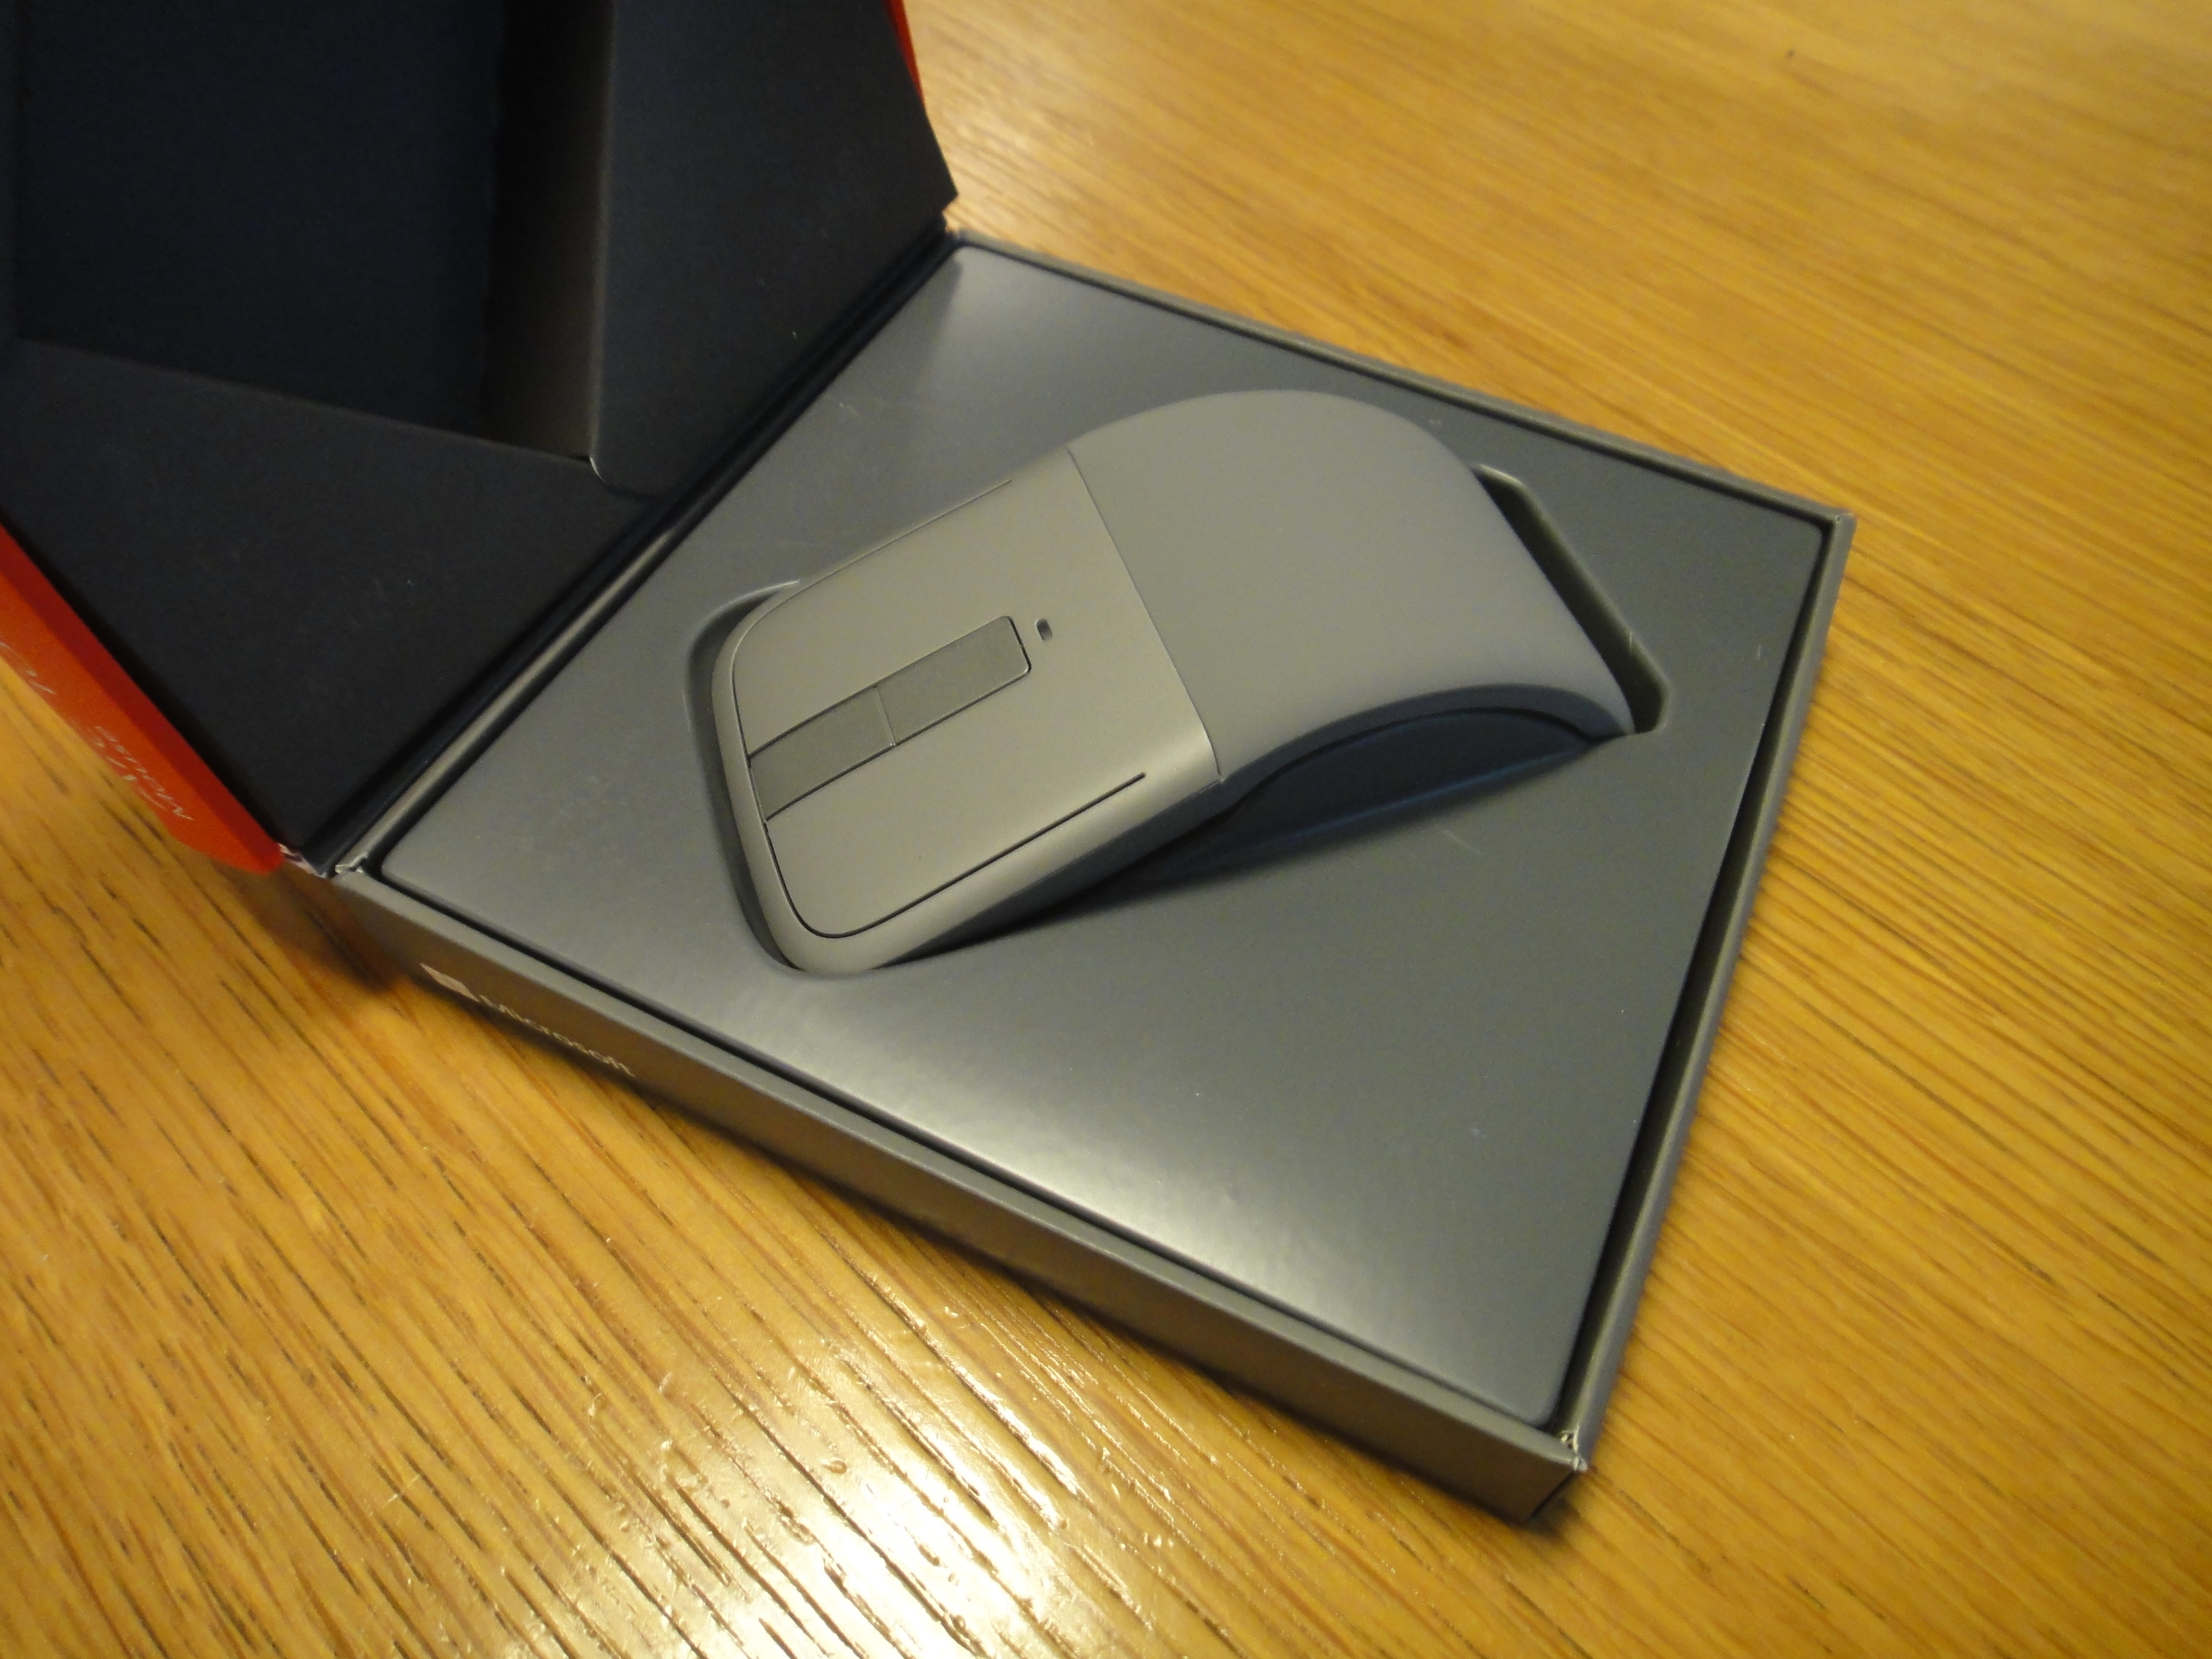 Great for travel - The Microsoft Arc Touch folds flat